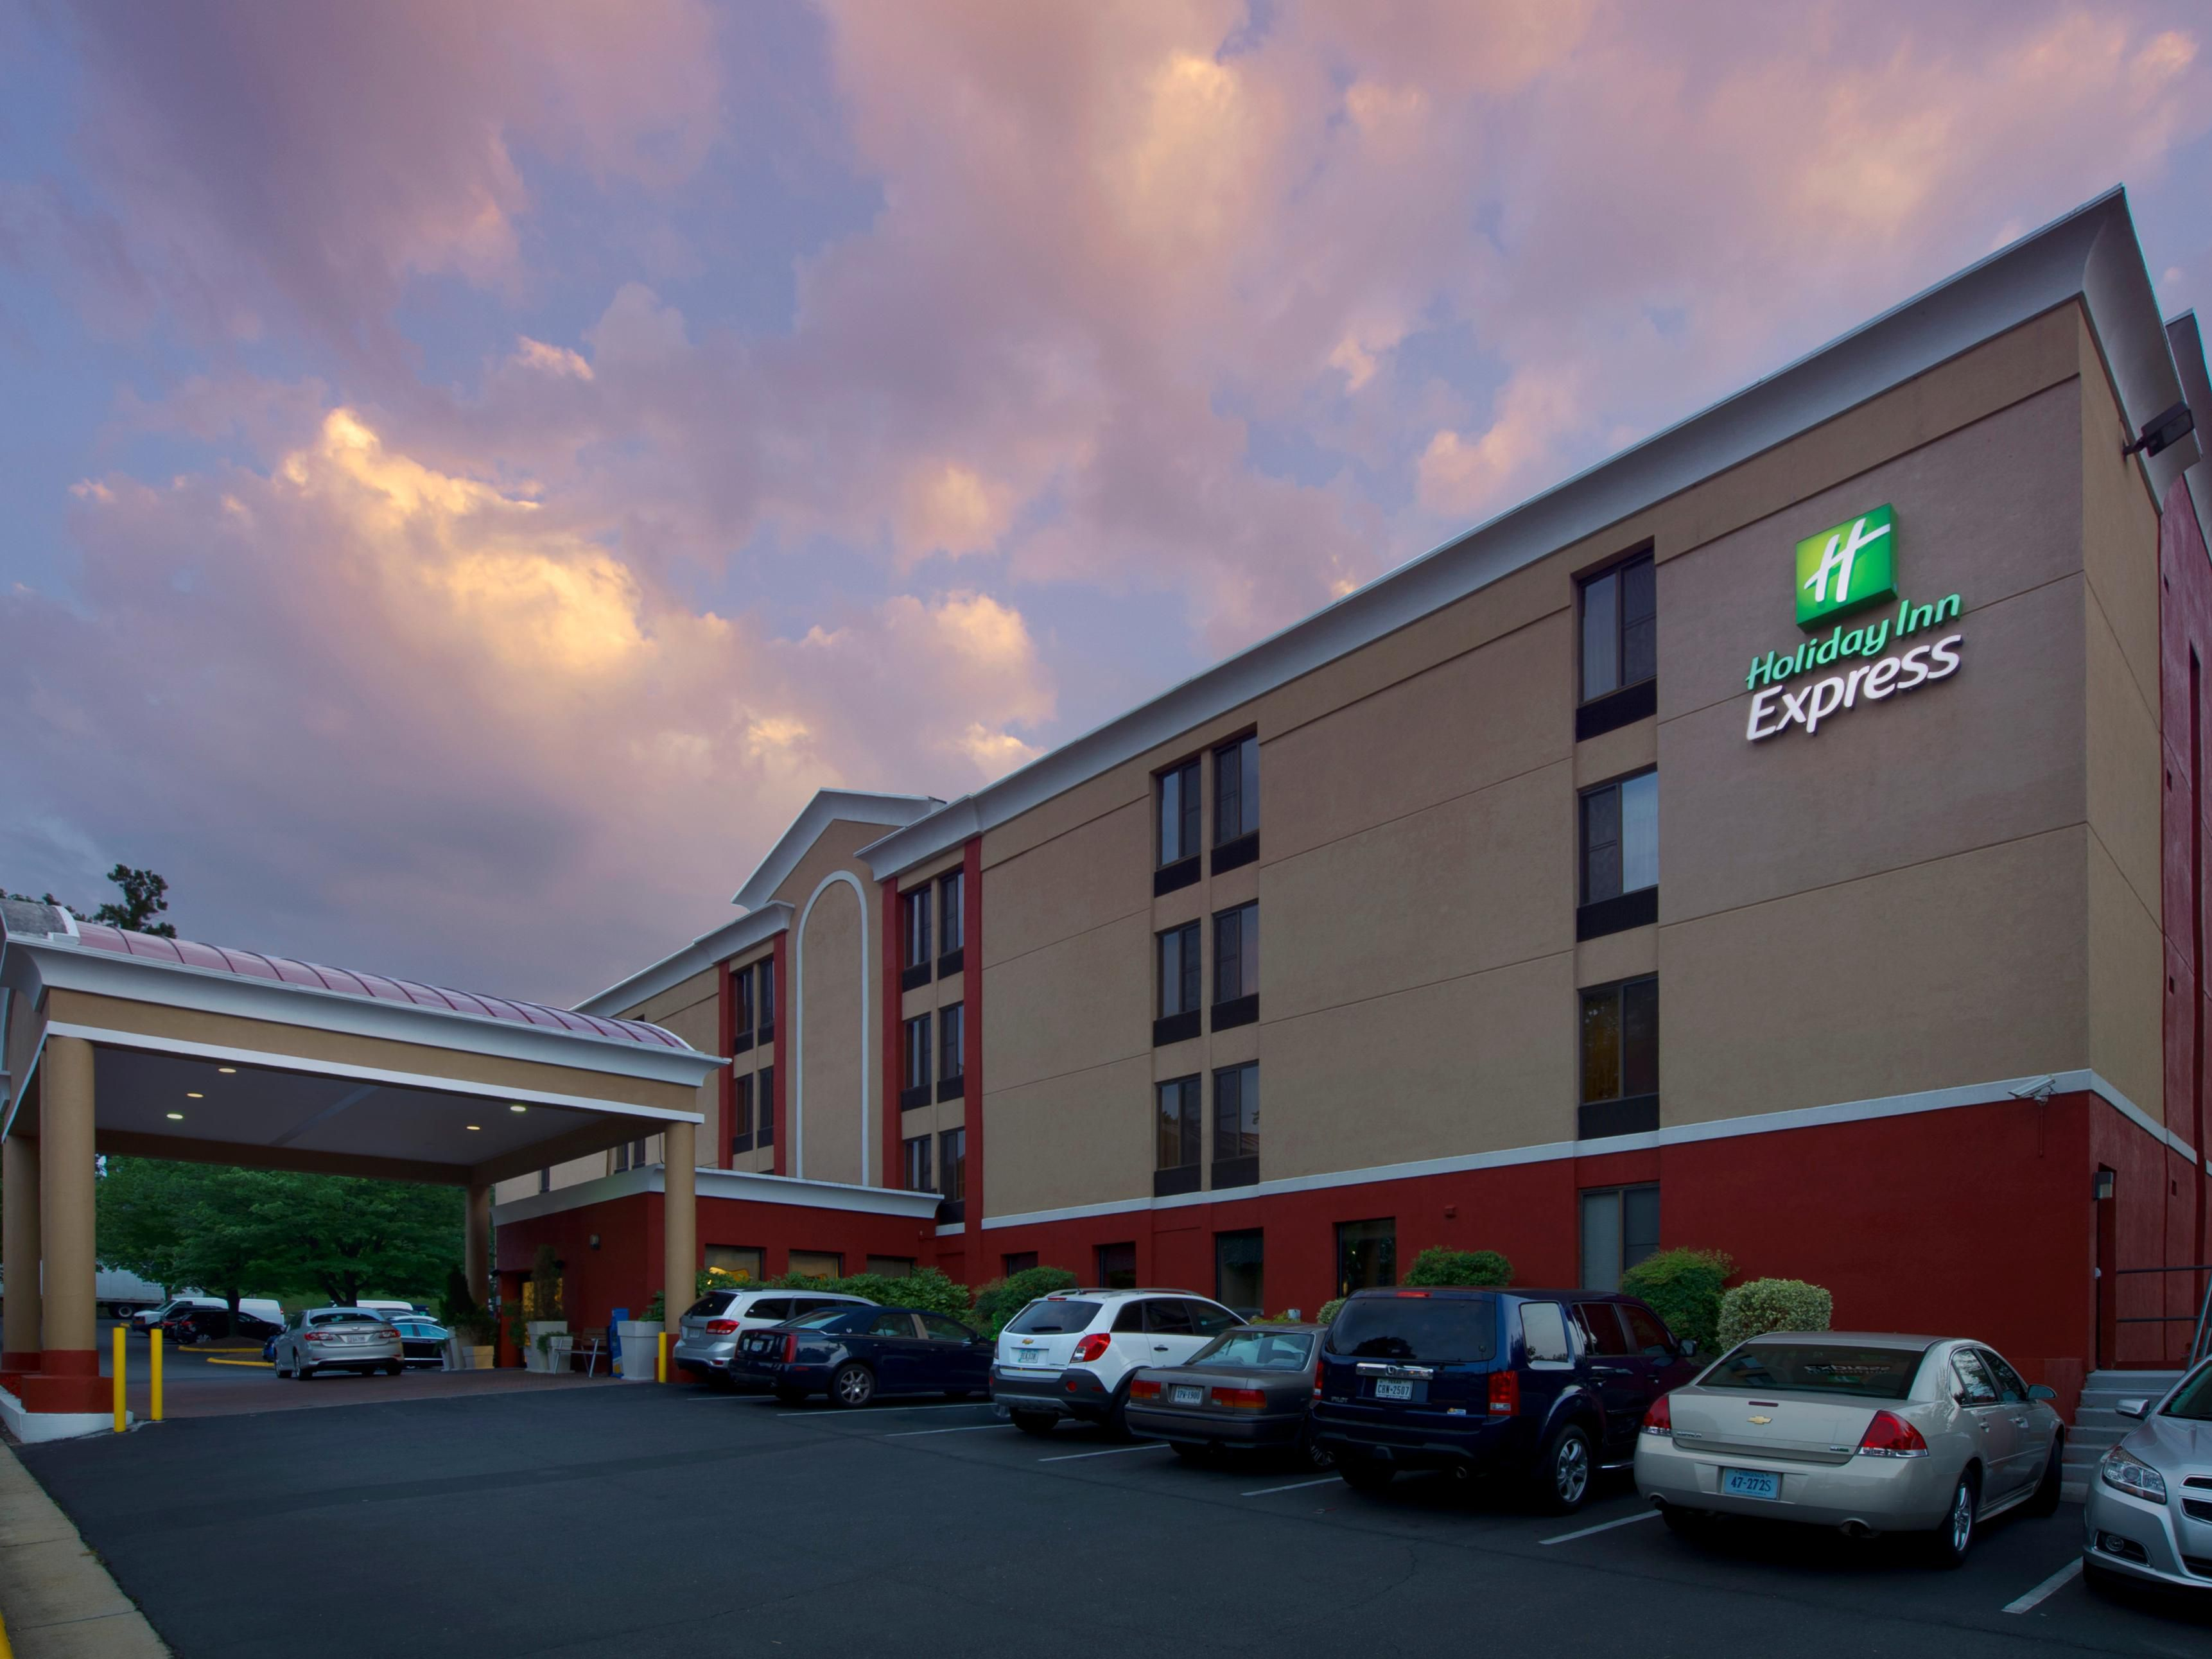 Welcome to the Holiday Inn Express Fairfax